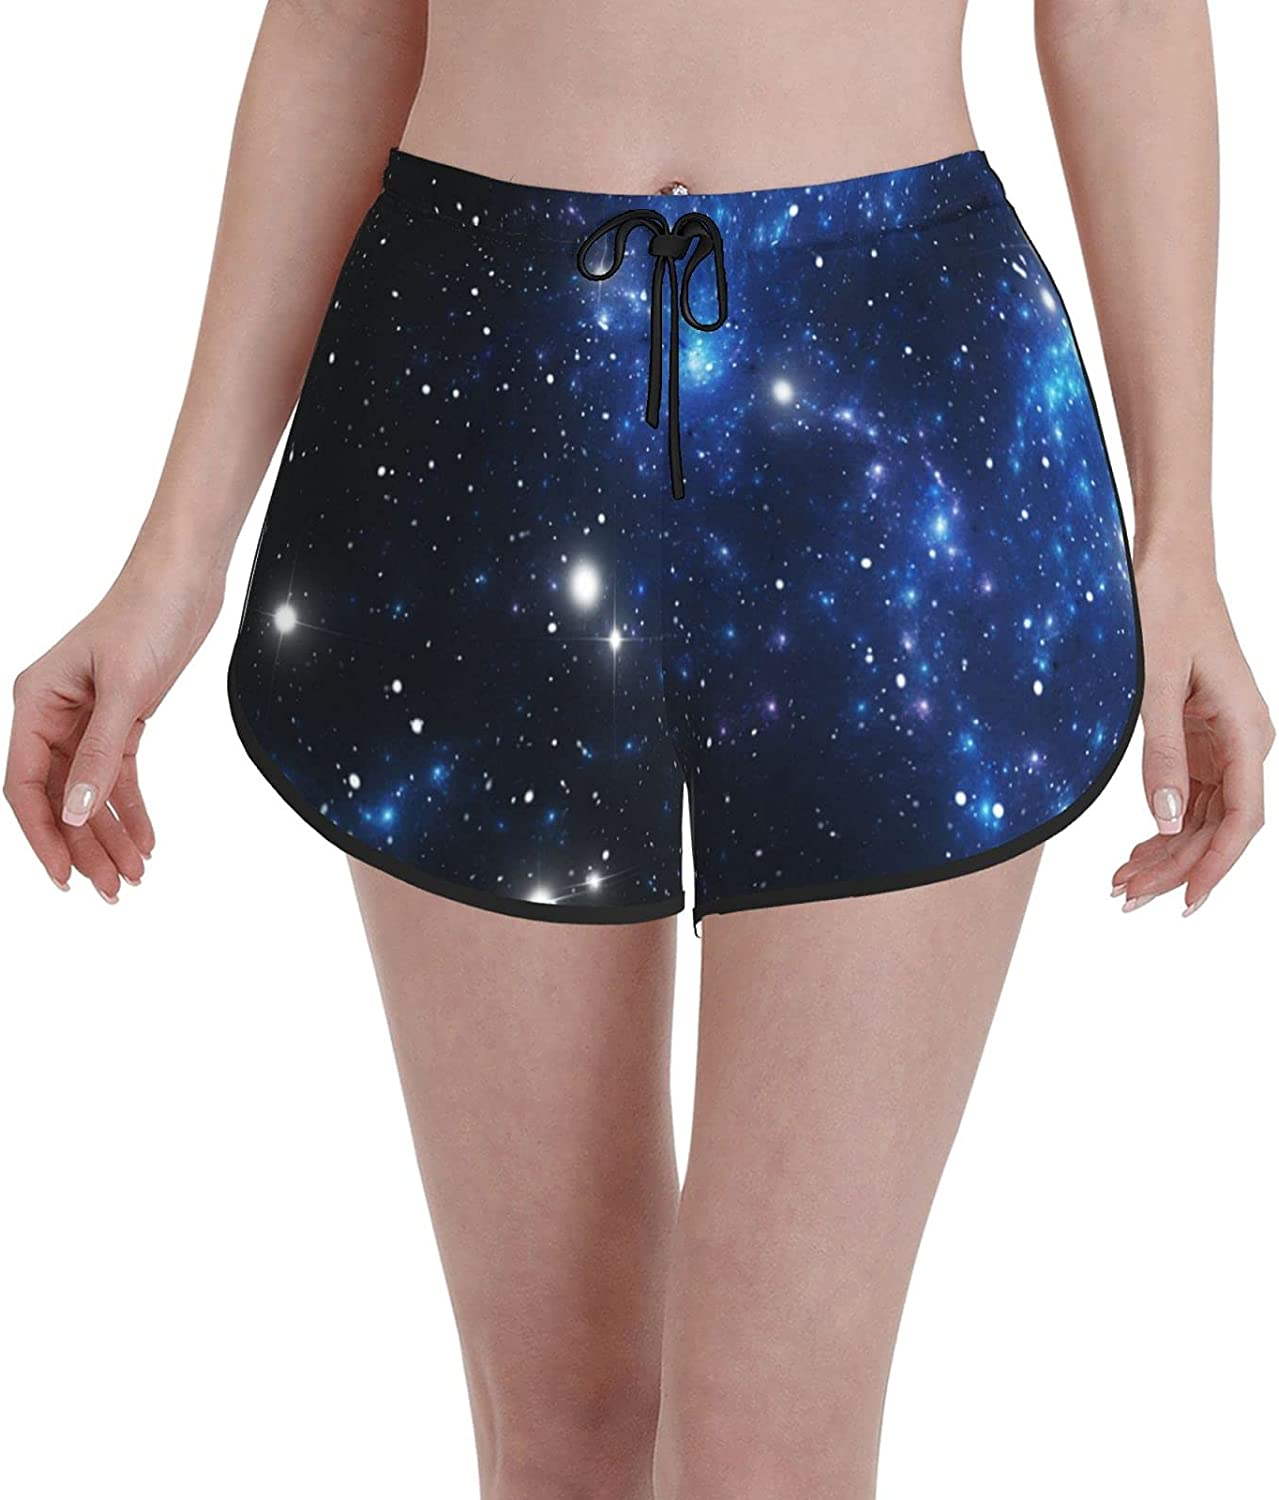 Janrely Casual Board Shorts for Women Beach Attention brand Popular Girls Trunks We Swim